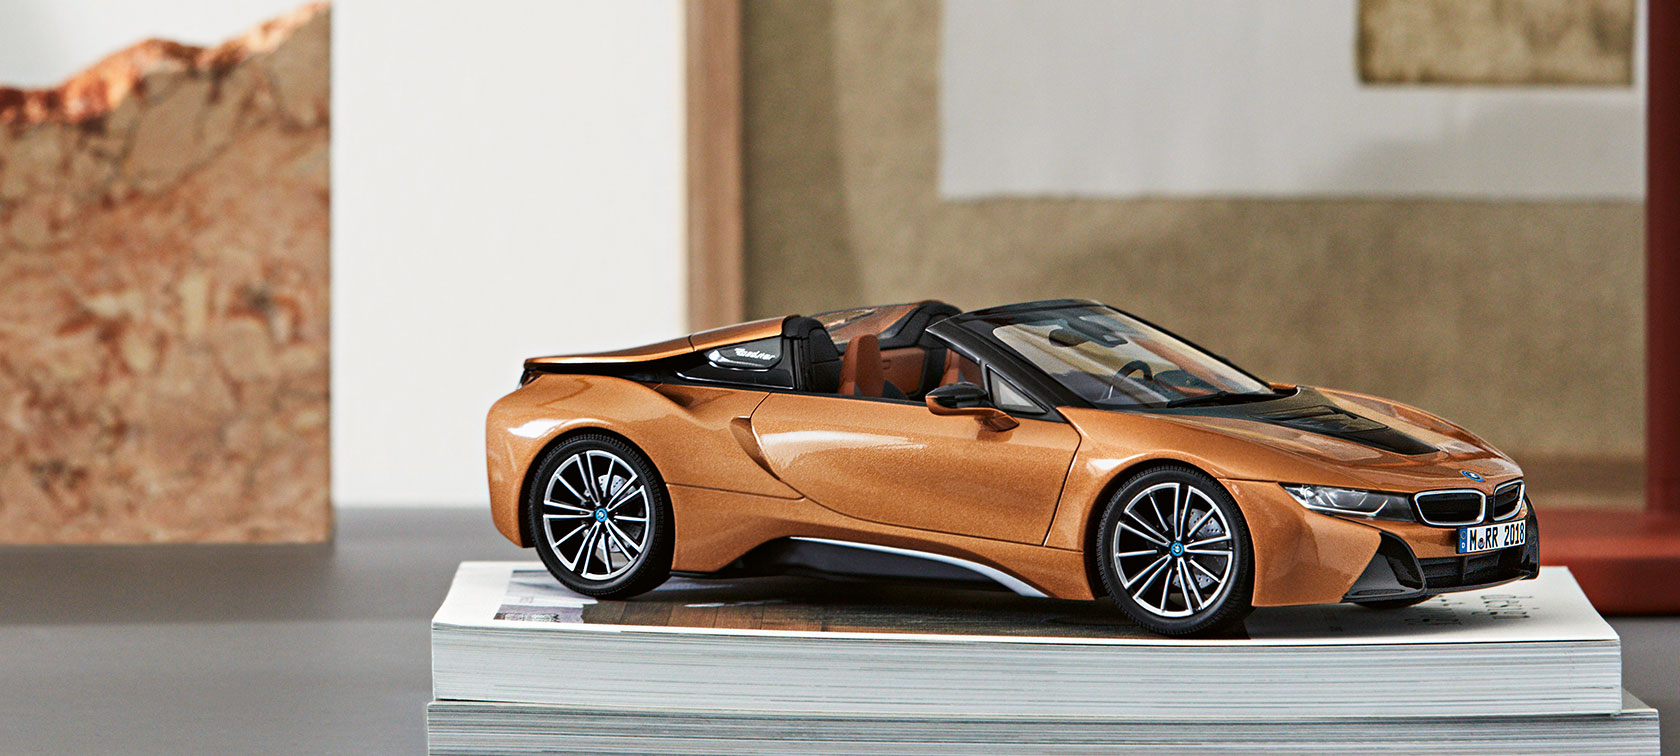 A miniature BMW i8 Roadster sits decoratively on a pile of magazines.